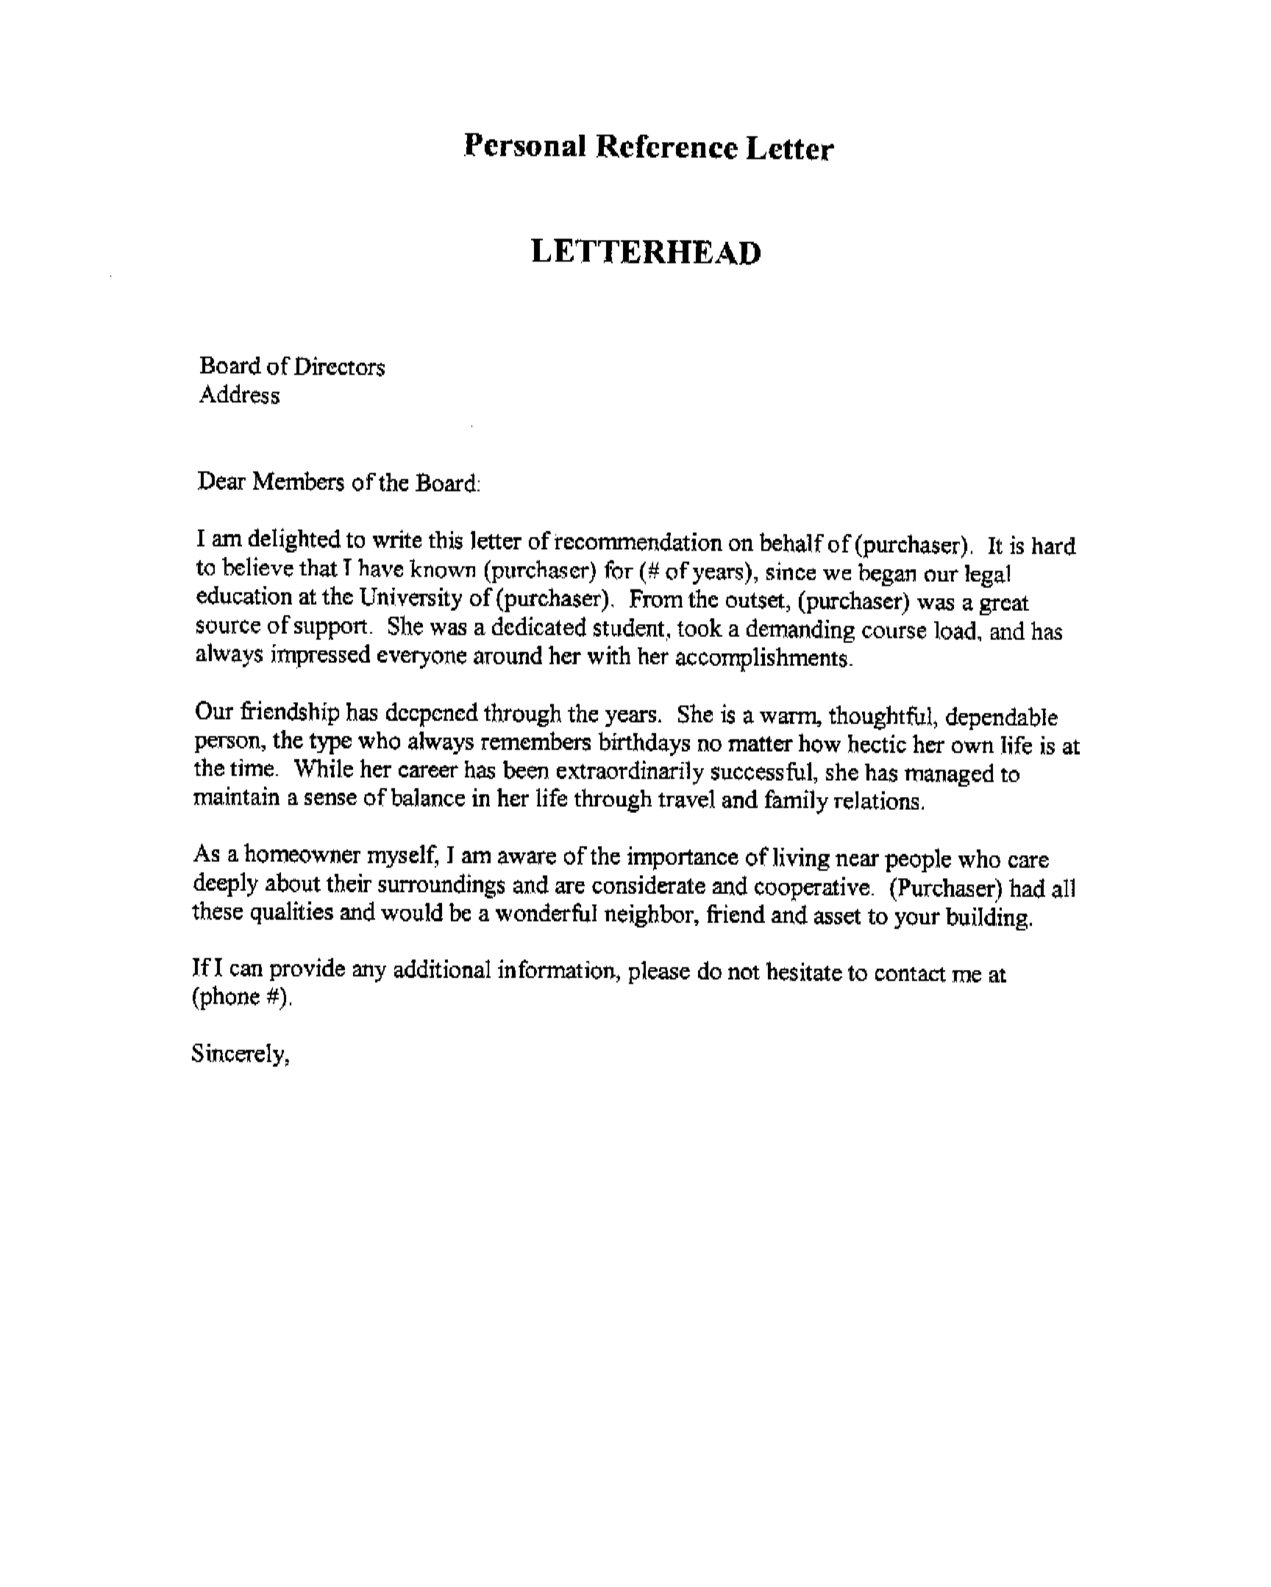 Personal Reference Letter for A Friend Template - Professional Letter Reference Sample Gallery Letter format